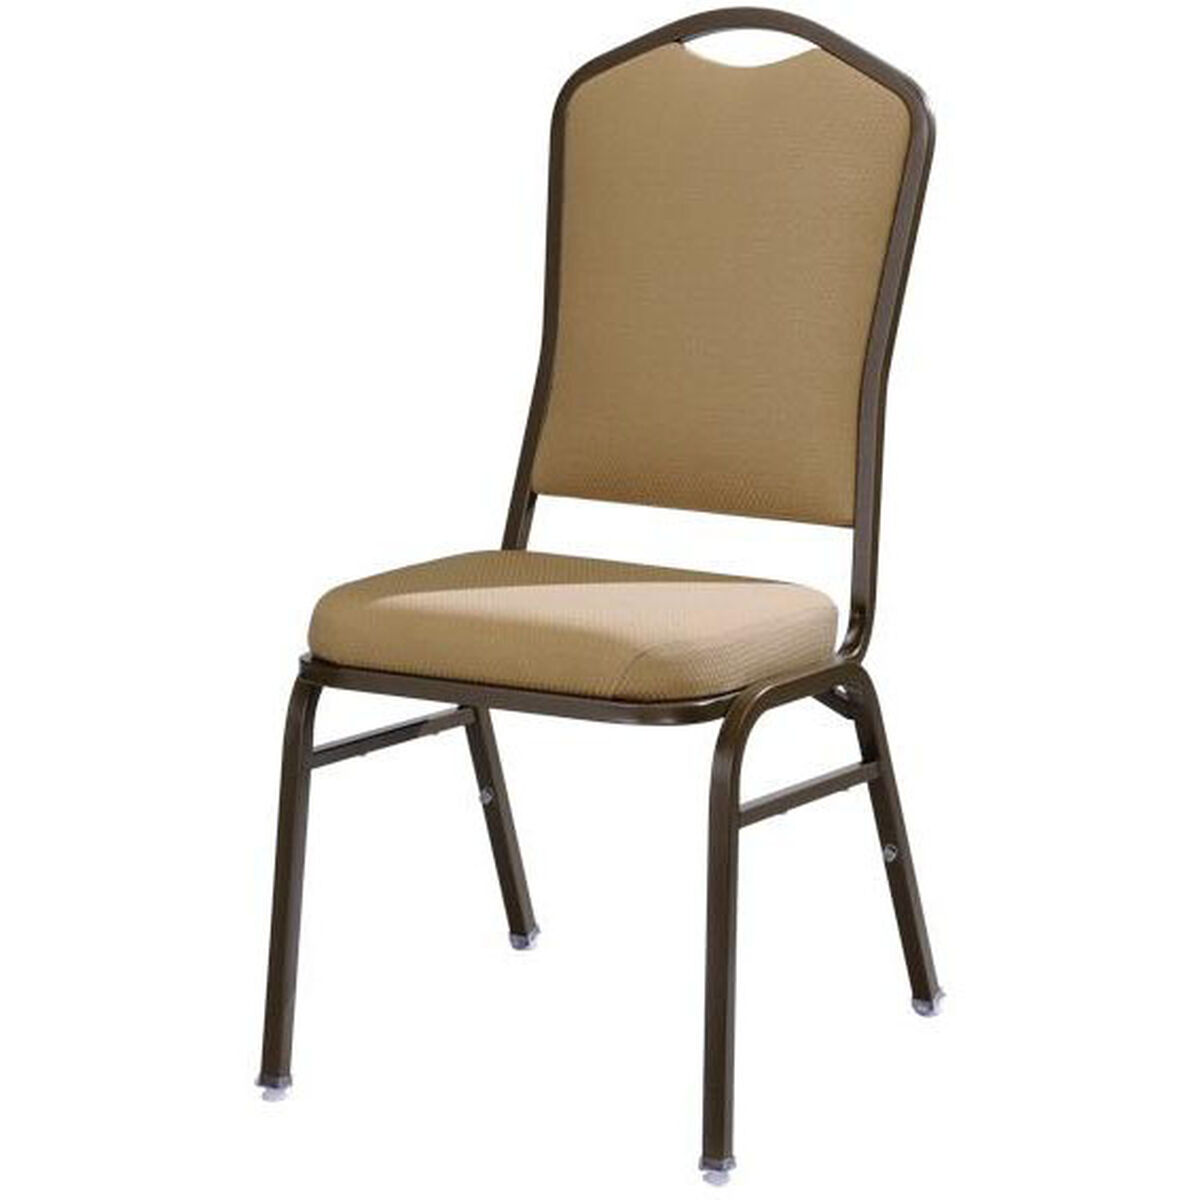 Mts Seating Omega I Banquet Stack Chair With Rectangular